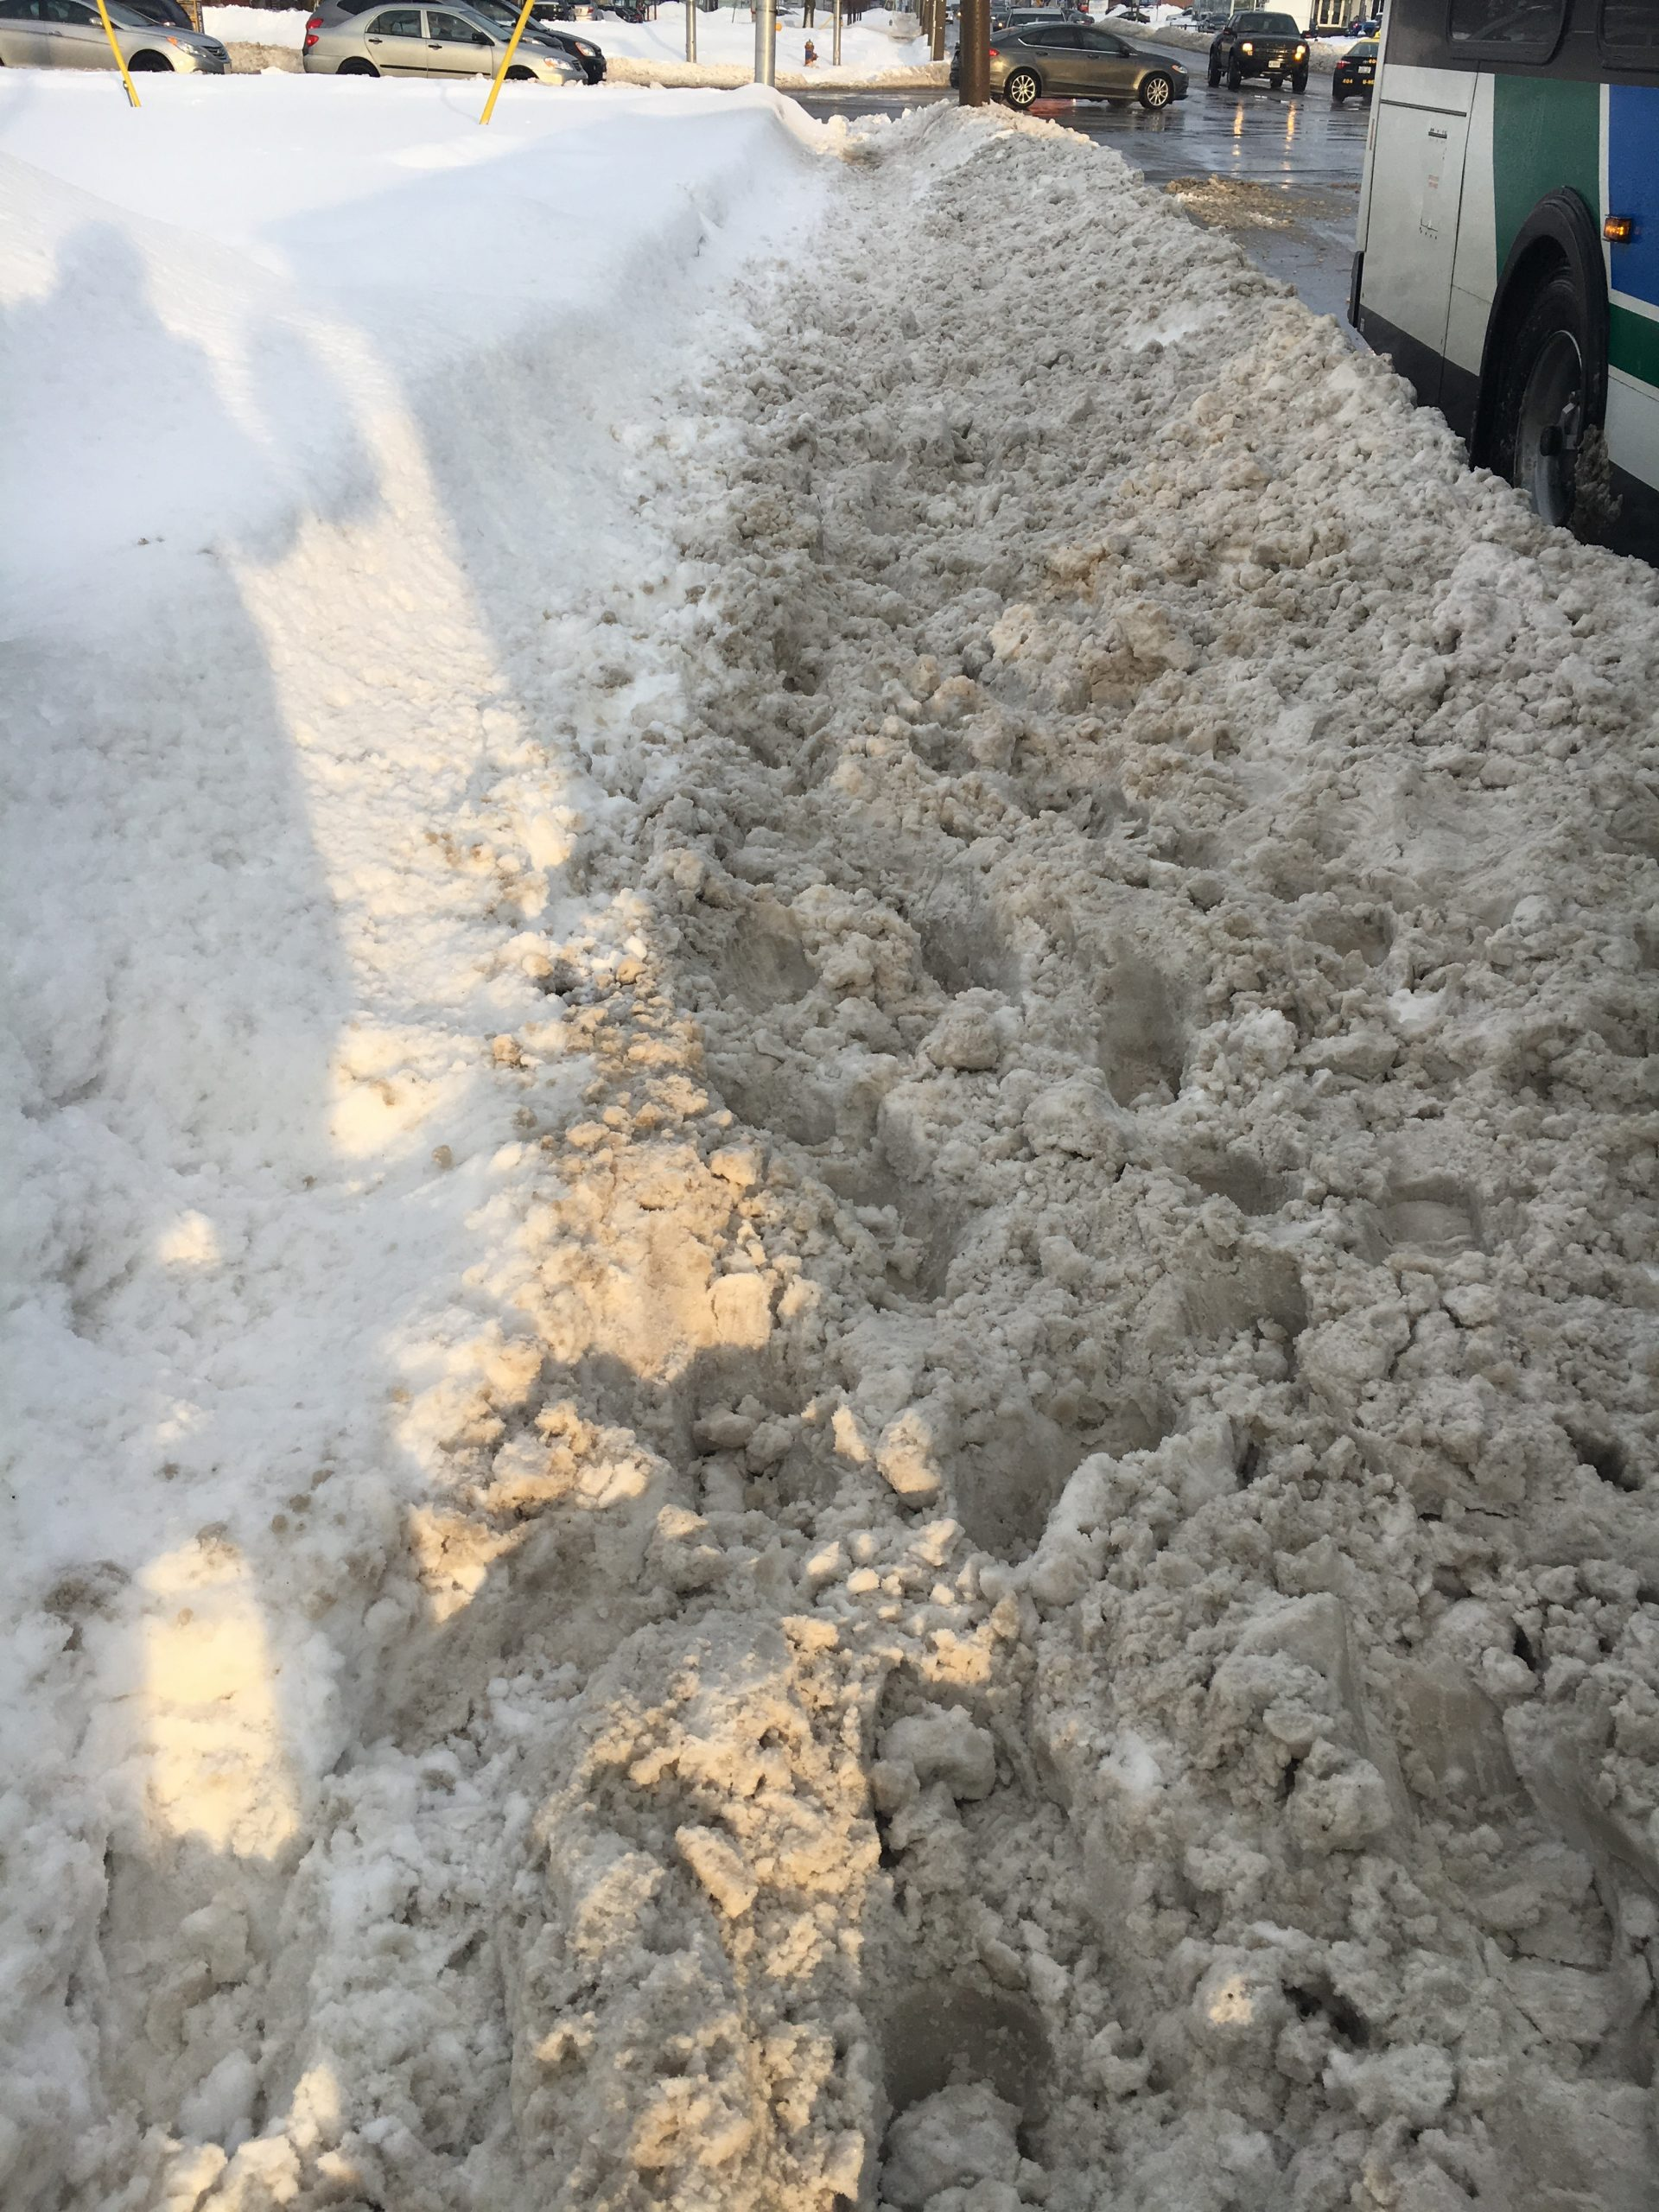 Pedestrians struggle with snow-filled sidewalks